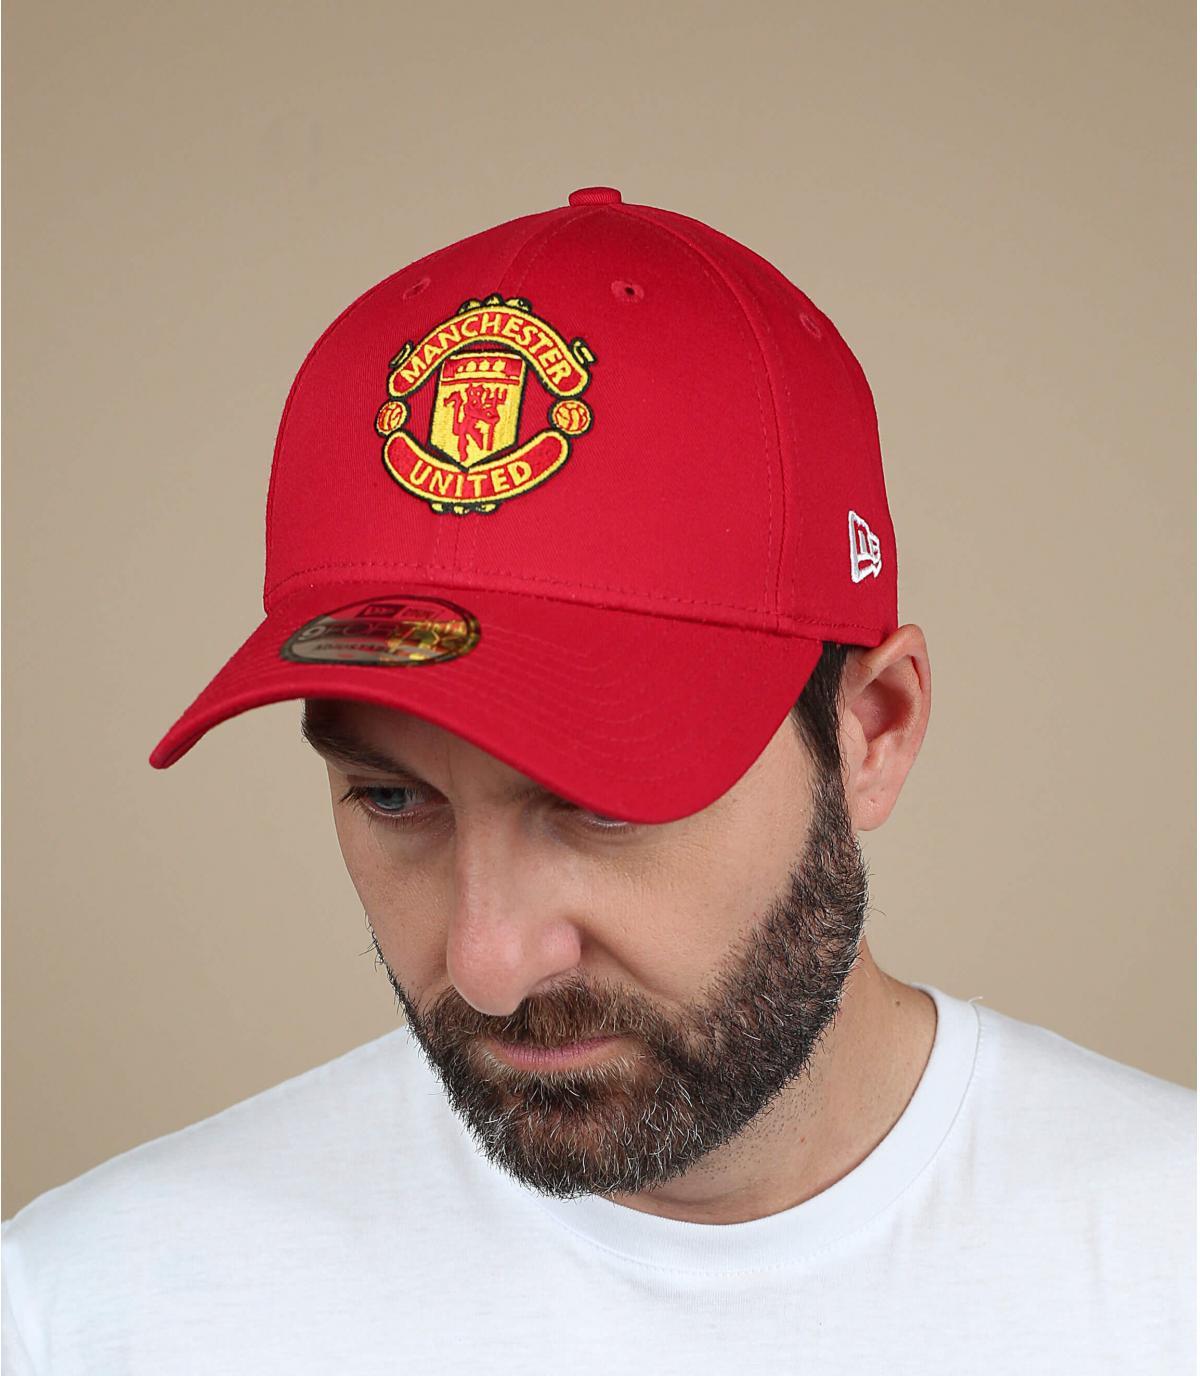 Red Manchester United cap